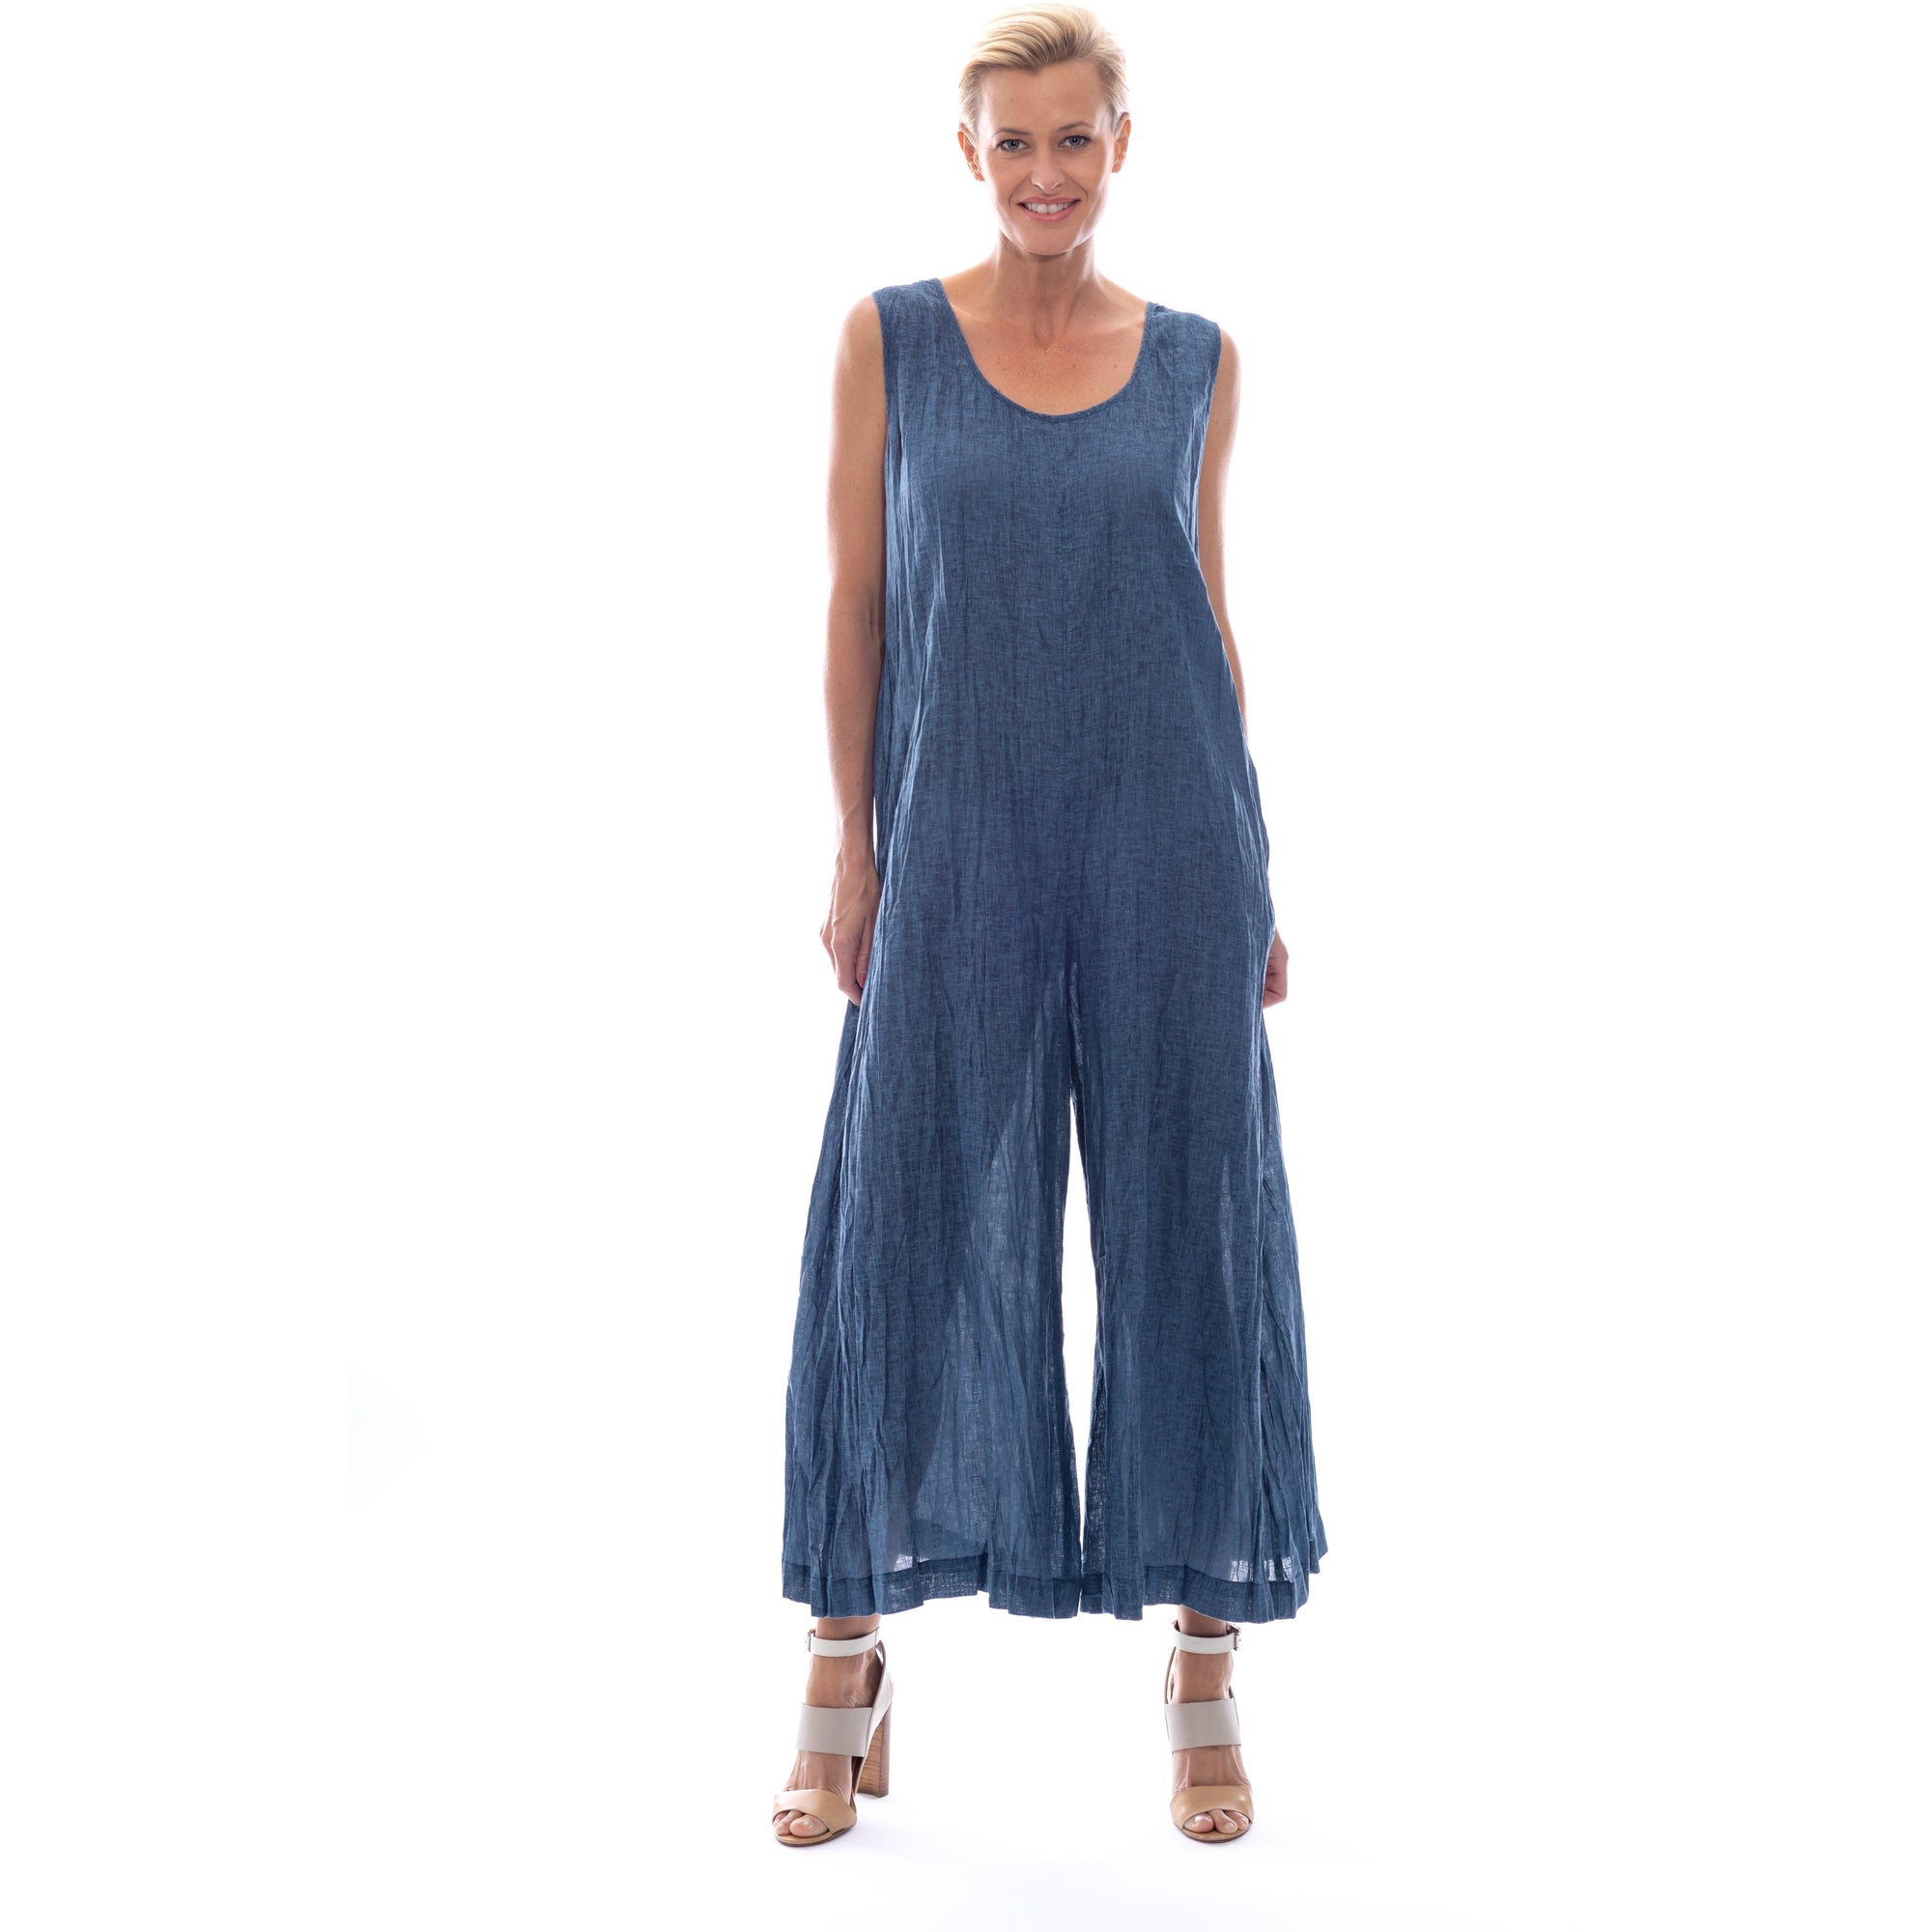 Sequel by Cafe Latte Jumpsuit in Indigo Blue Plain Linen